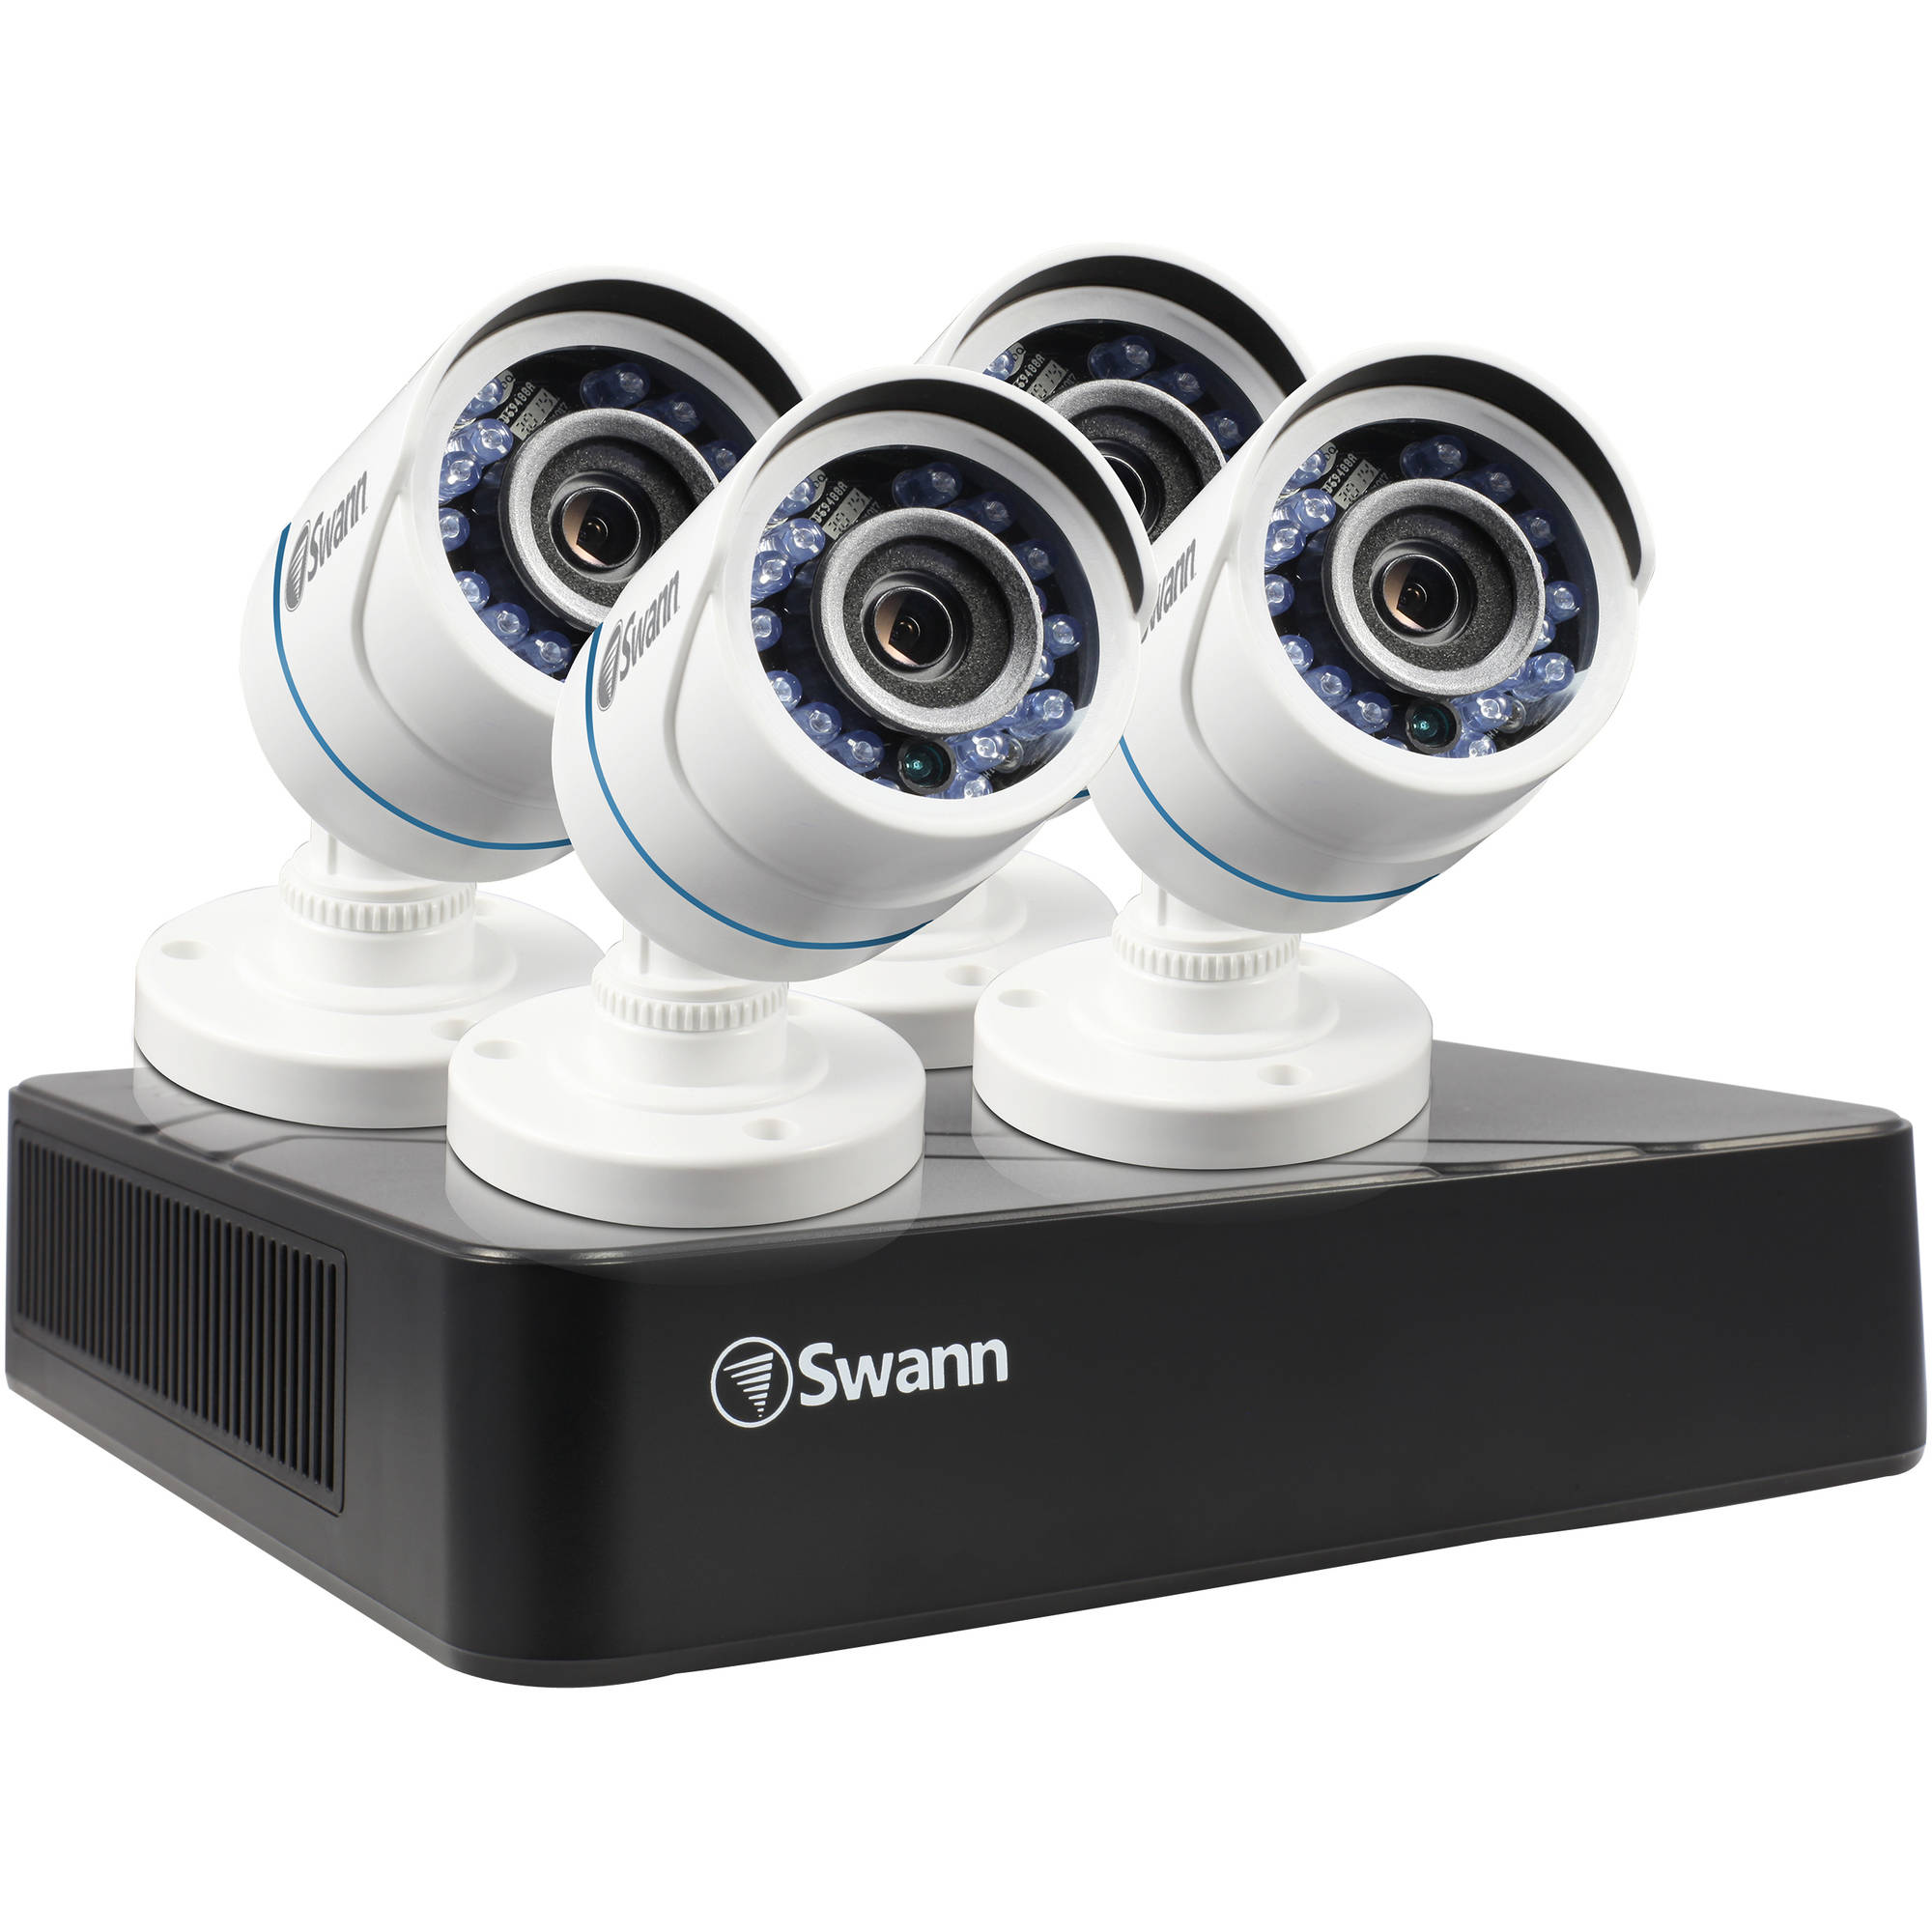 Swann 8-Channel 720A 500GB DVR with Four 720P White Bullet Cameras